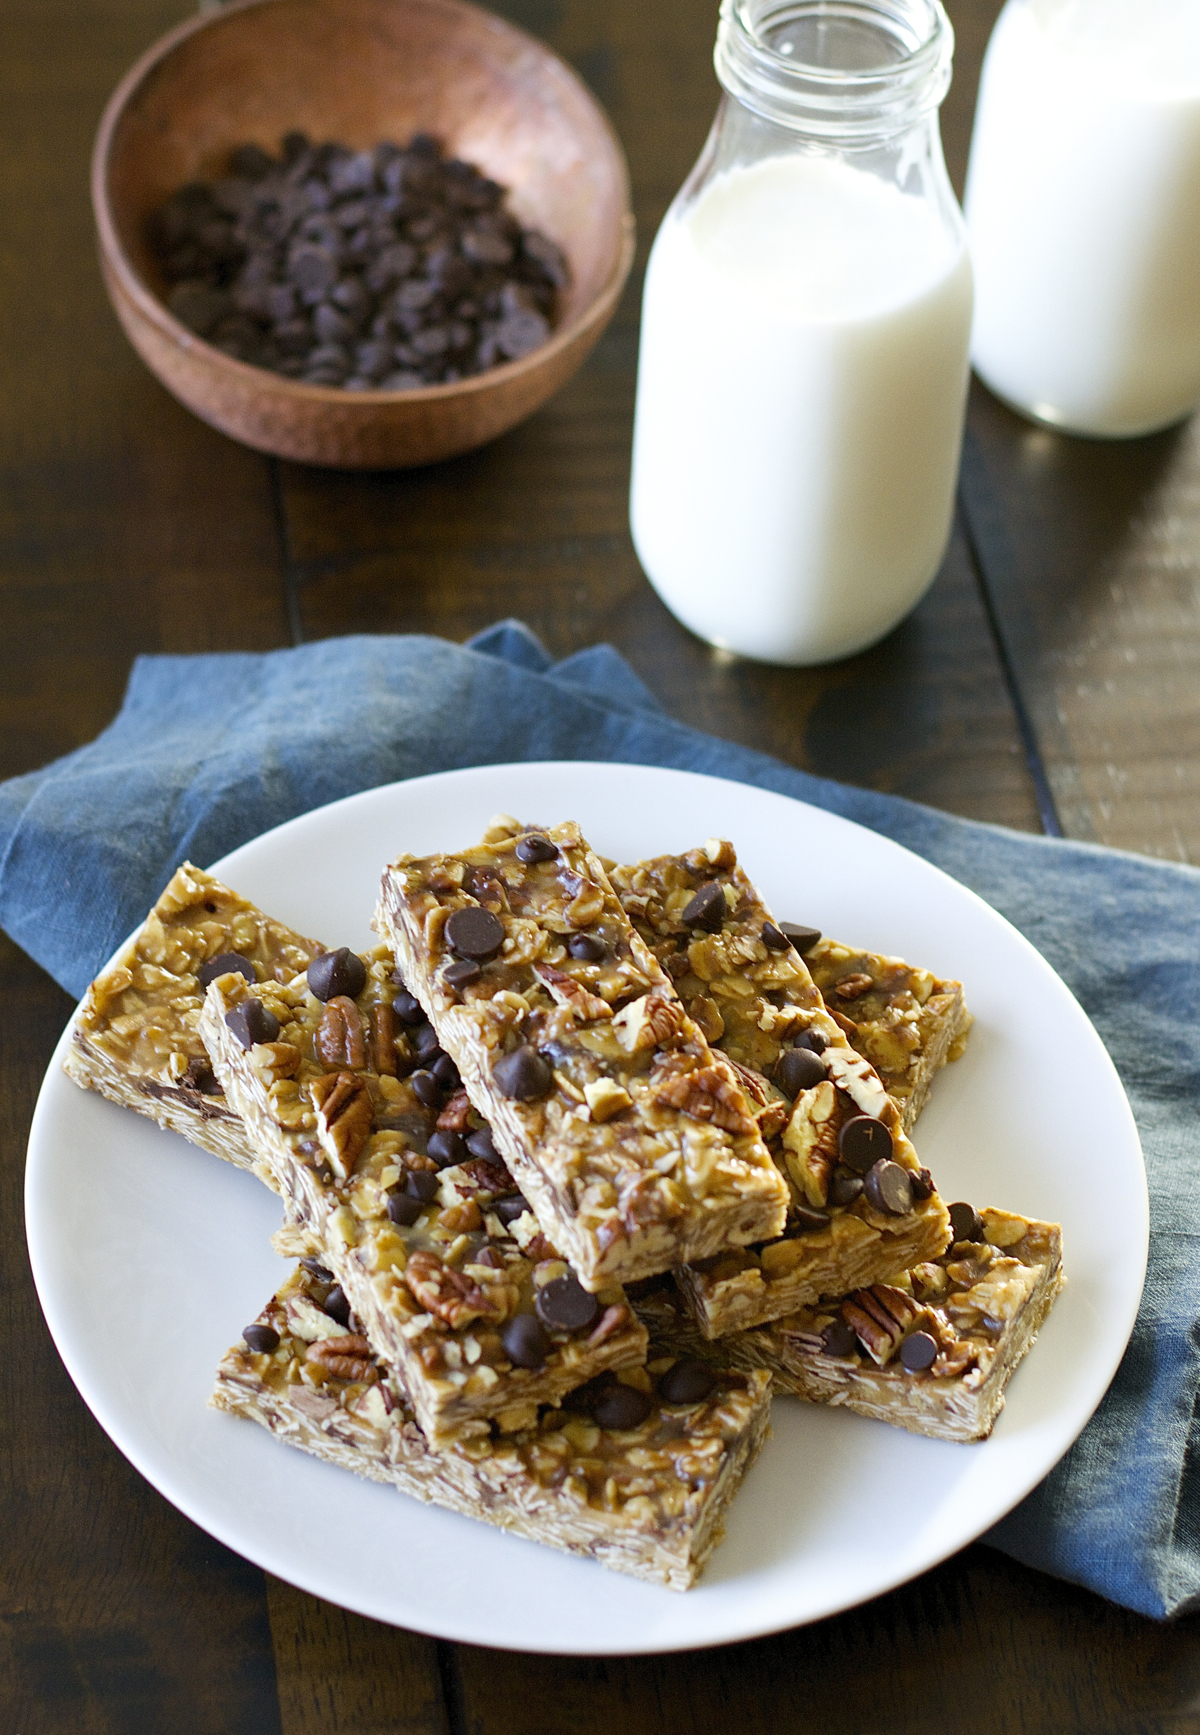 Super easy gluten free No Bake Peanut Butter Chocolate Chip Granola Bars! These bars perfect for an easy snack!